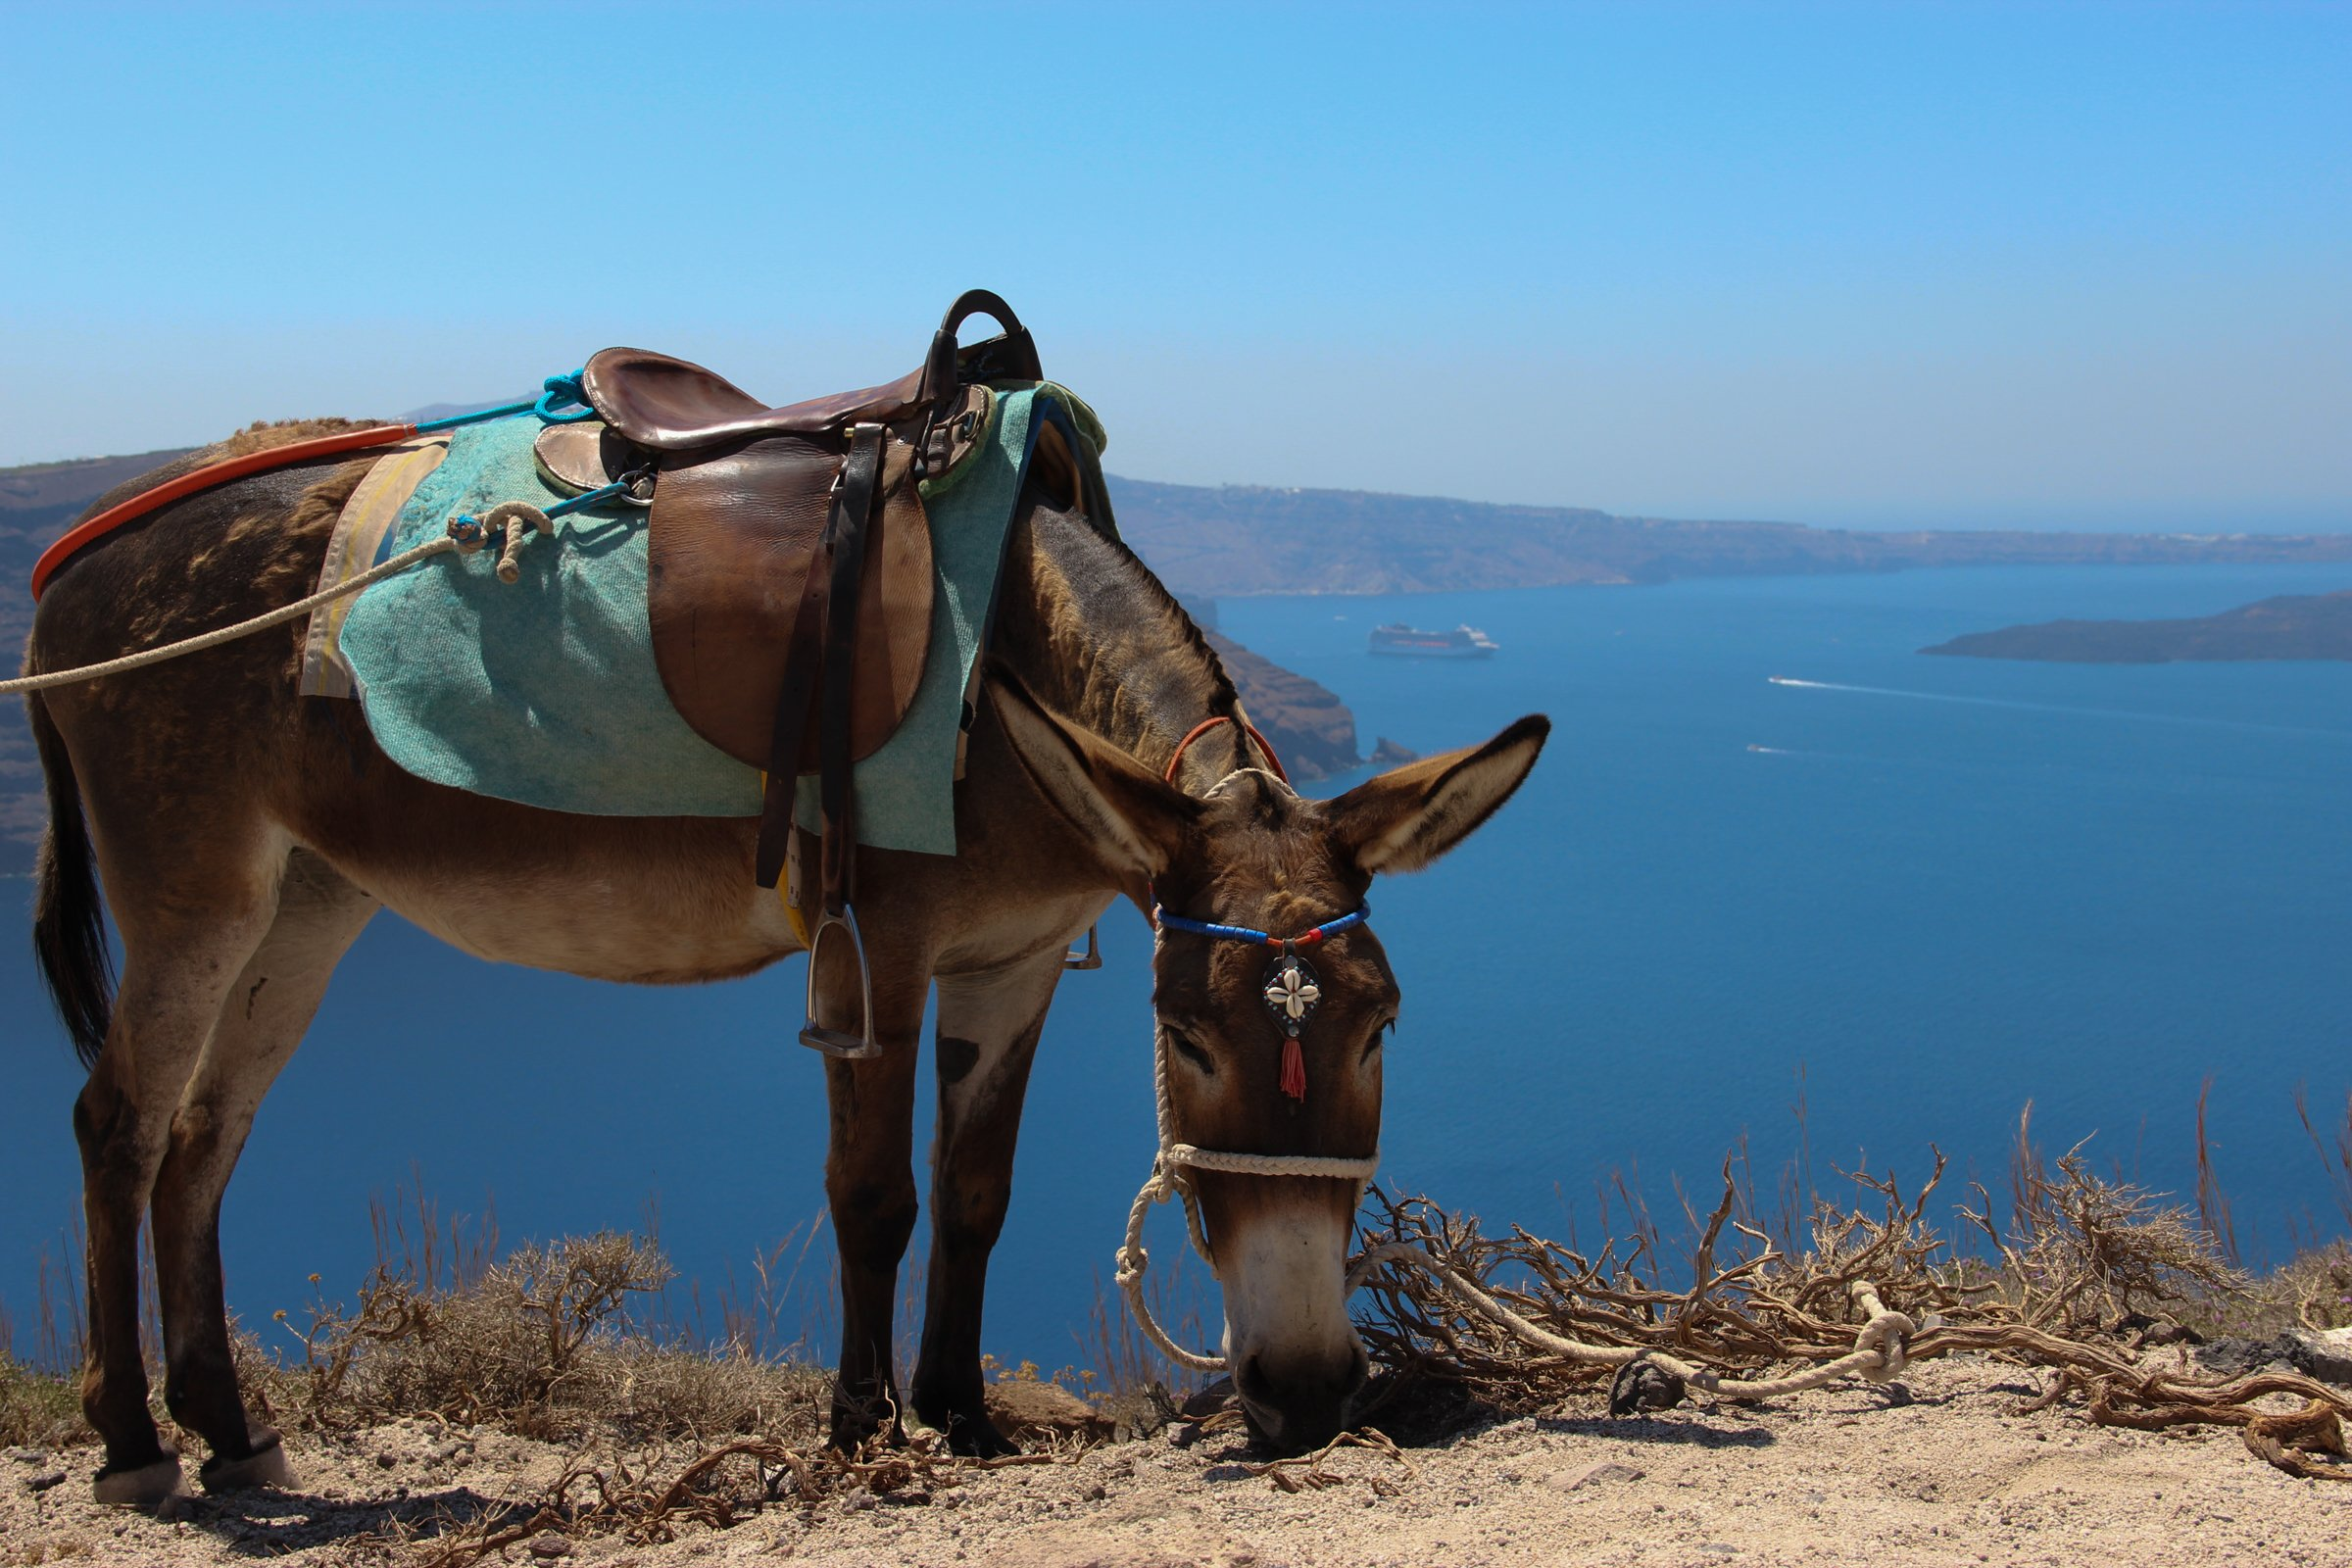 Saddled Donkey Grazing Near Cliff